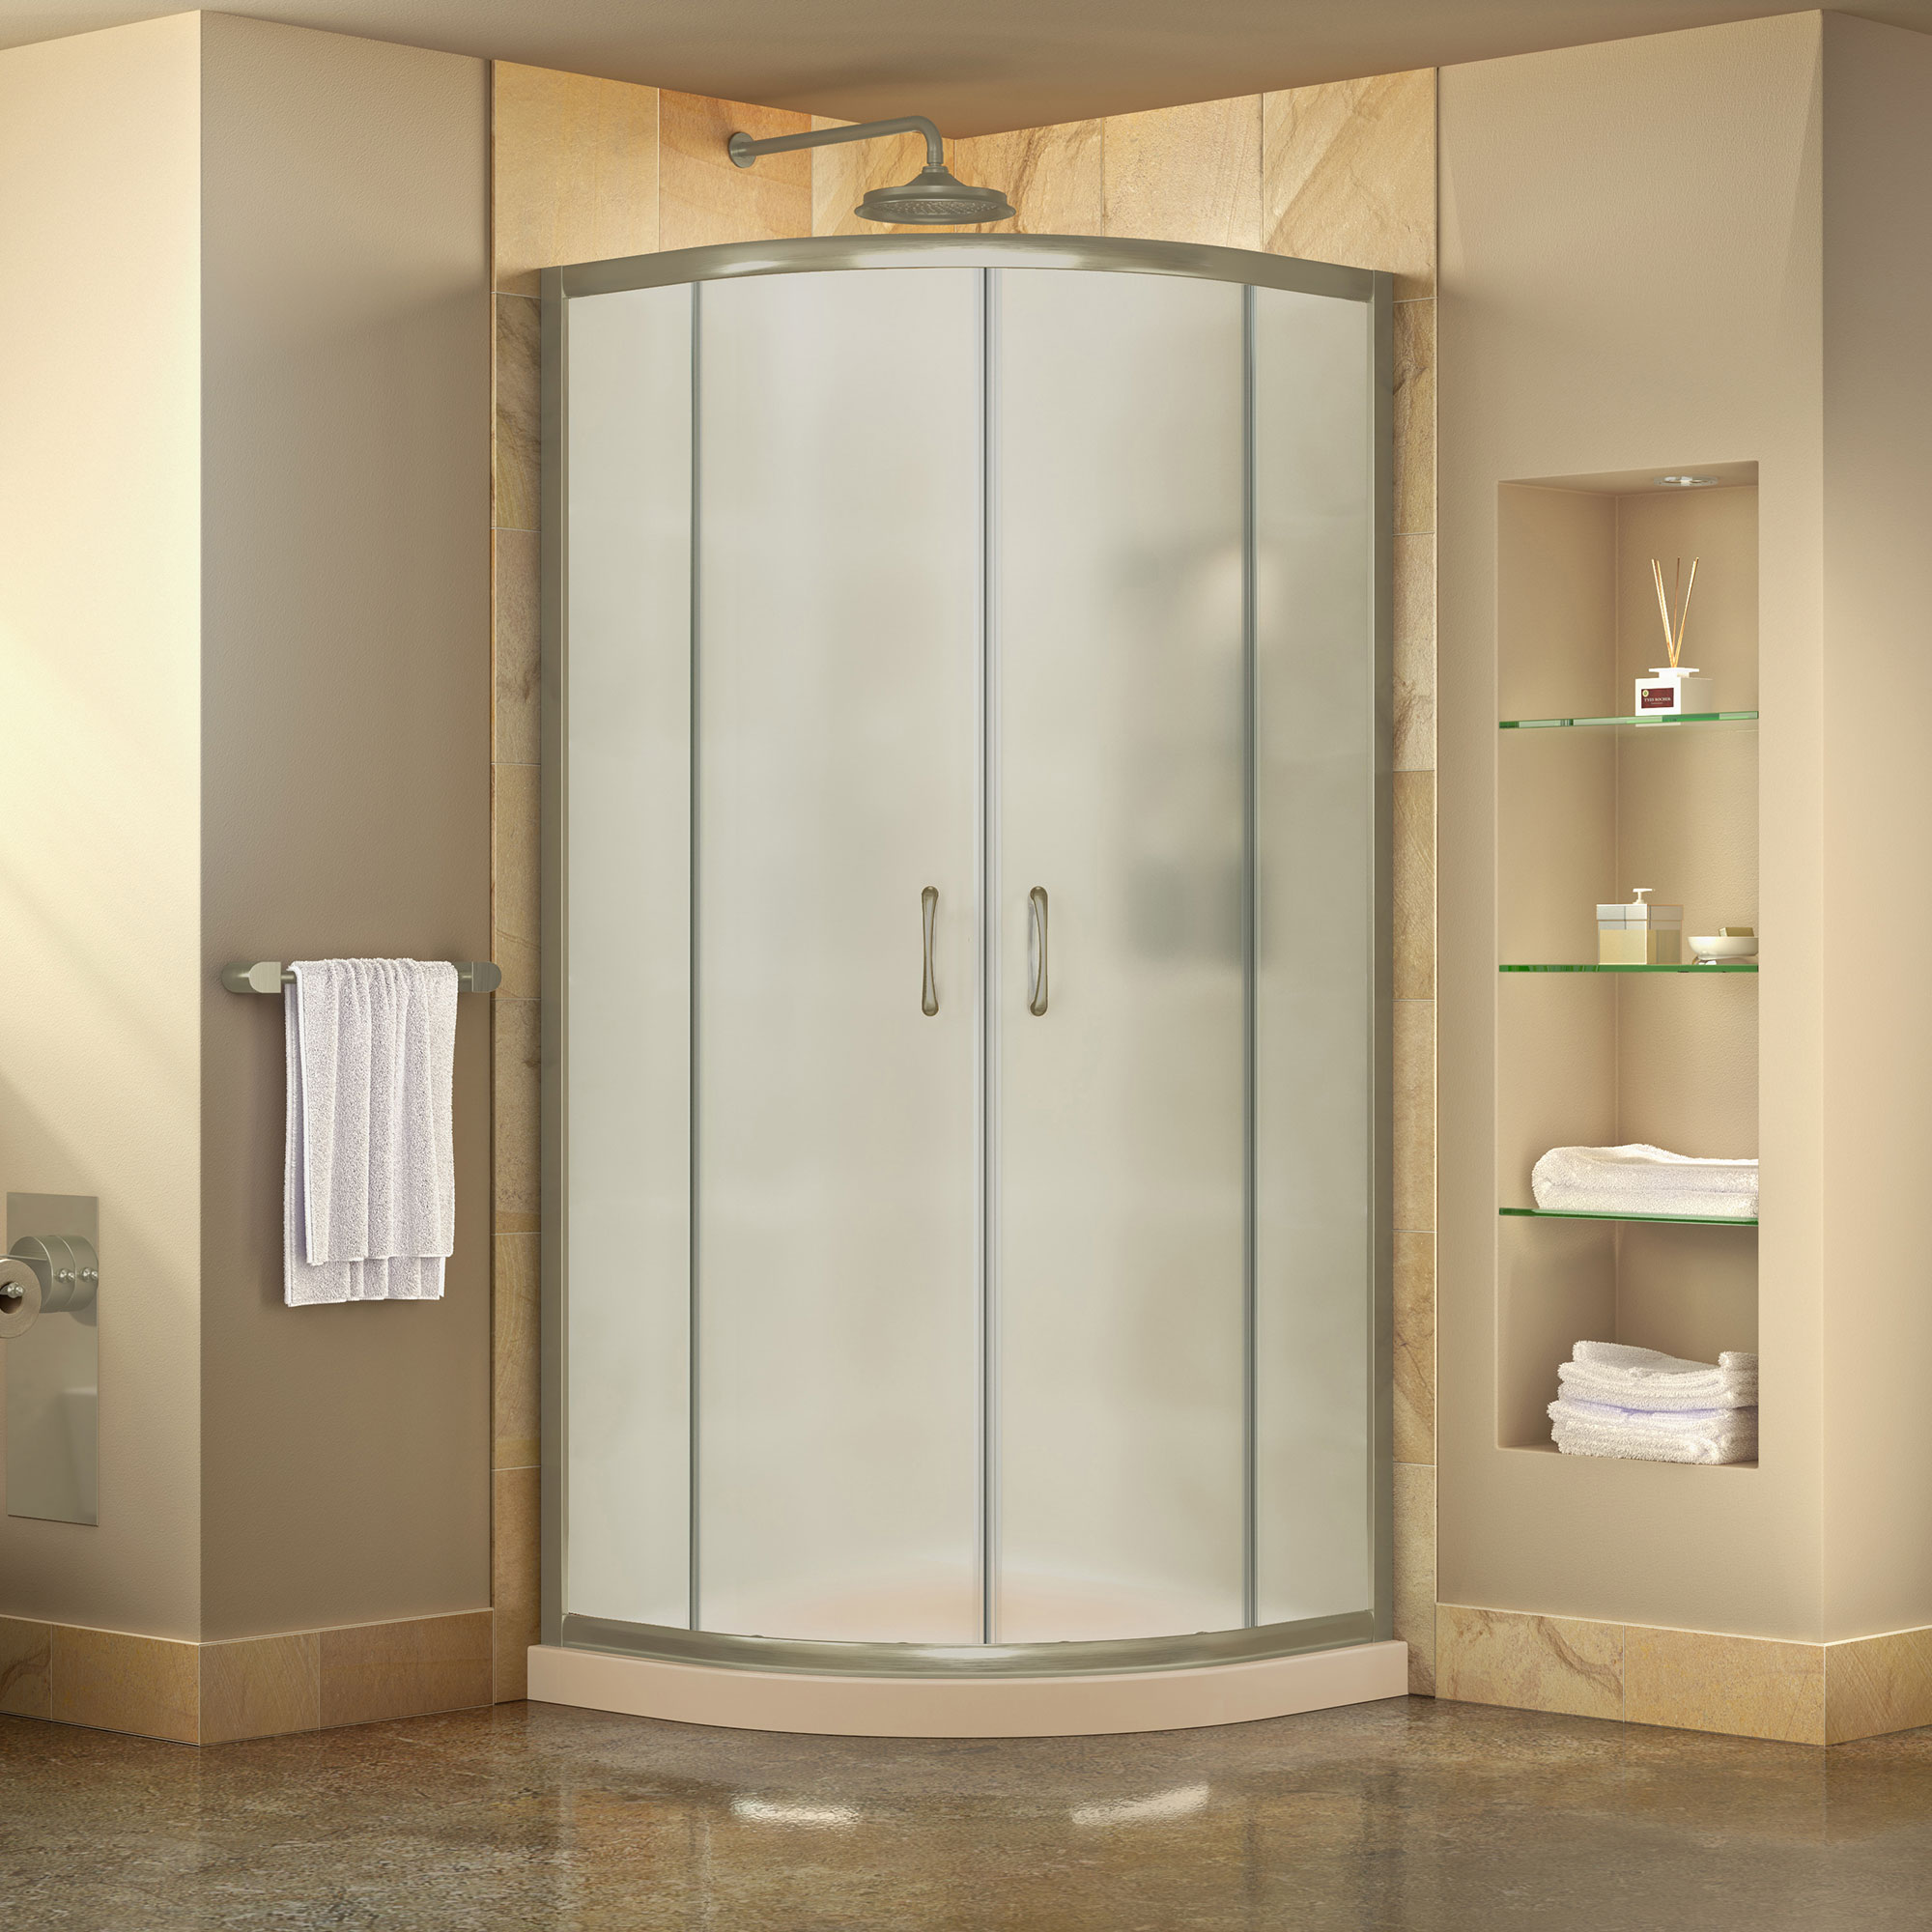 Dreamline Prime 36 In X 74 3 4 In Semi Frameless Frosted Glass Sliding Shower Enclosure In Brushed Nickel With Biscuit Base Kit